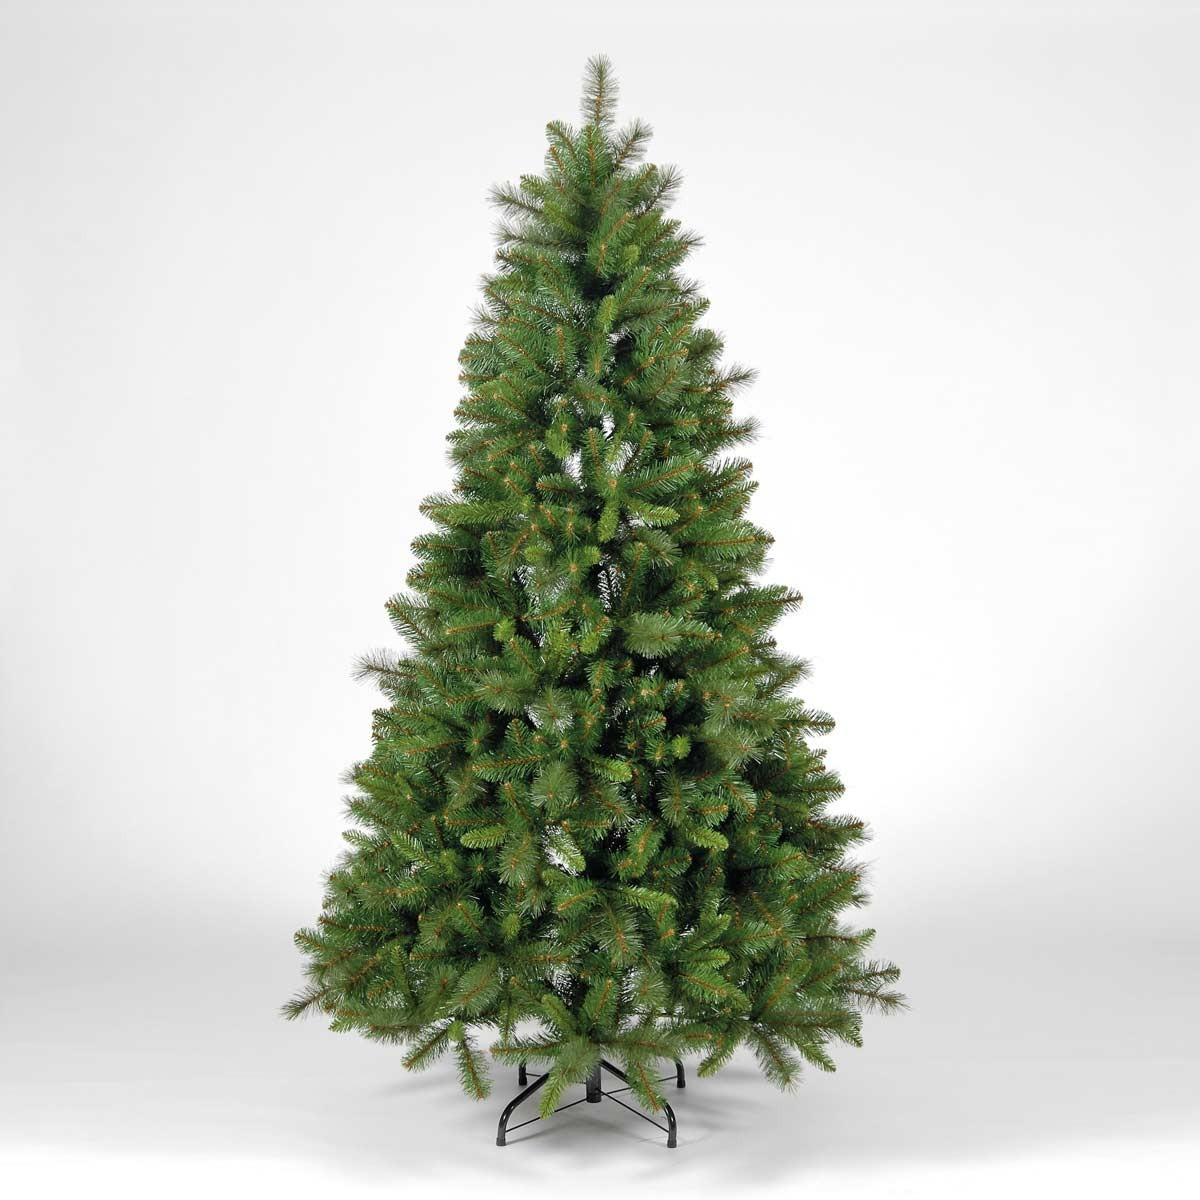 Pine Christmas Tree With Lights & Ornaments - Easy To Assemble (6 Feet)